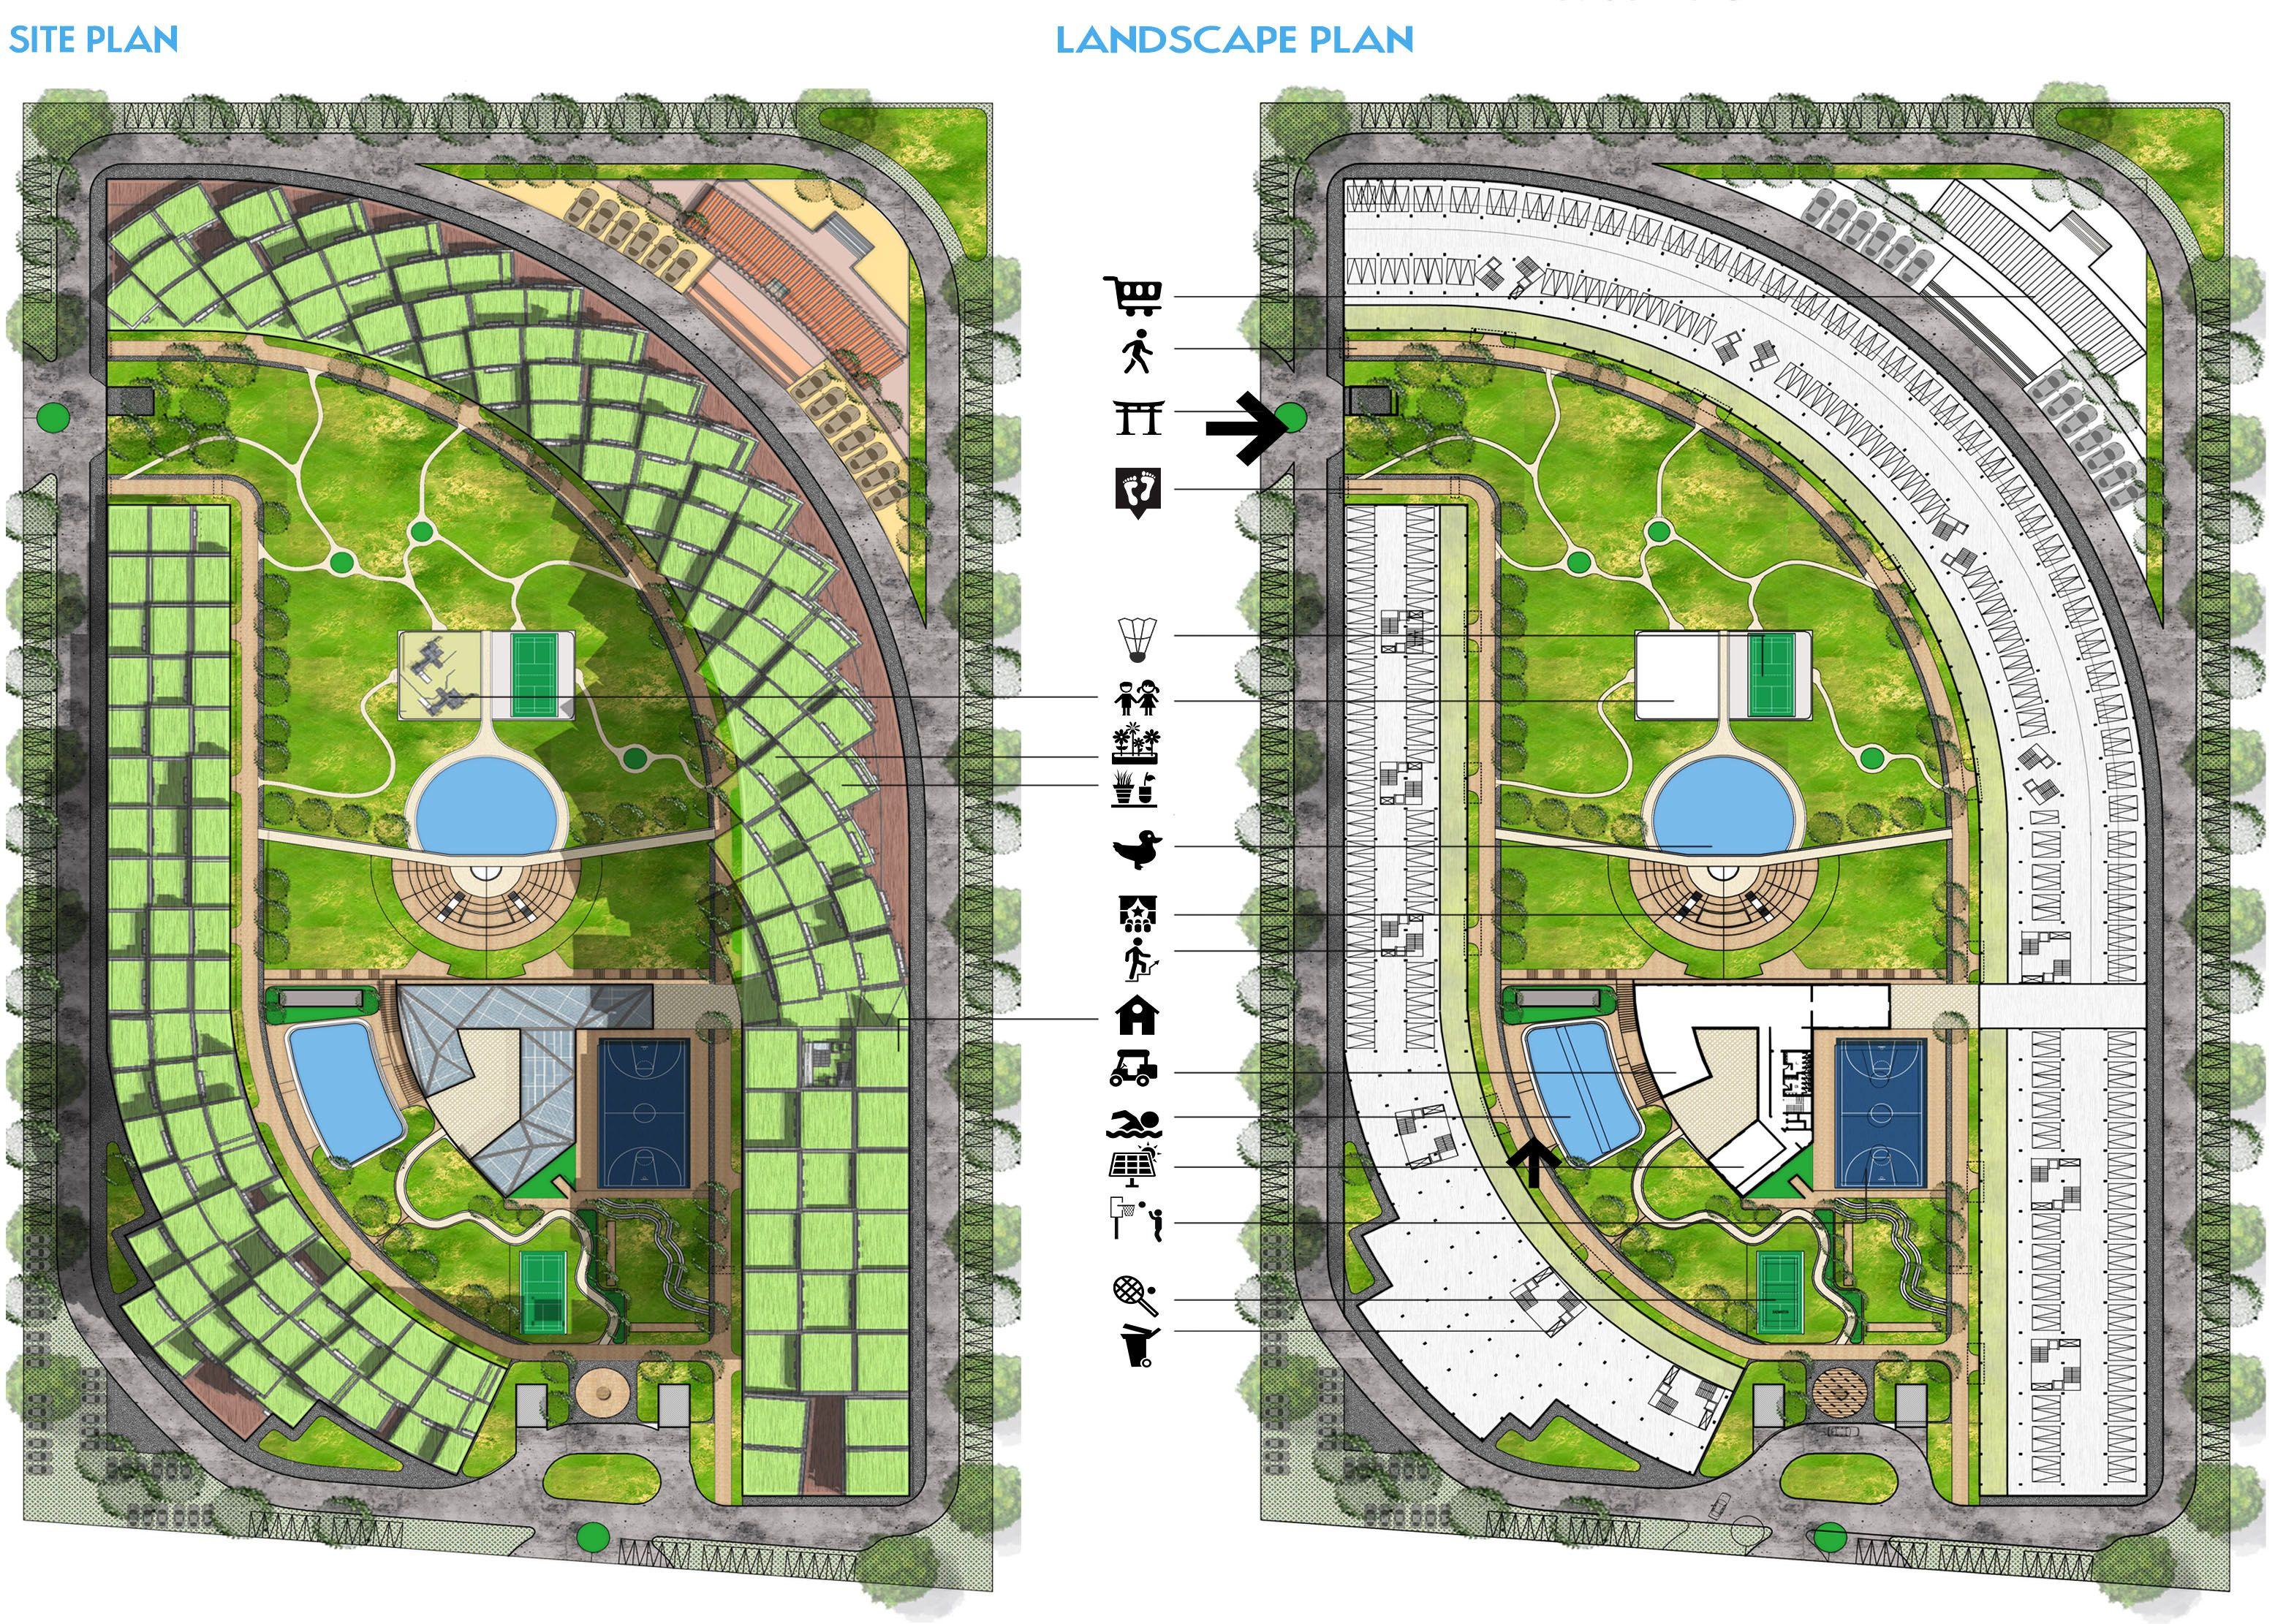 Site Plan Landscape Plan Green And Sustainable Housing For Lotus Green Griha Summit 2015 Landscape Plan Interior Design Boards Site Plan